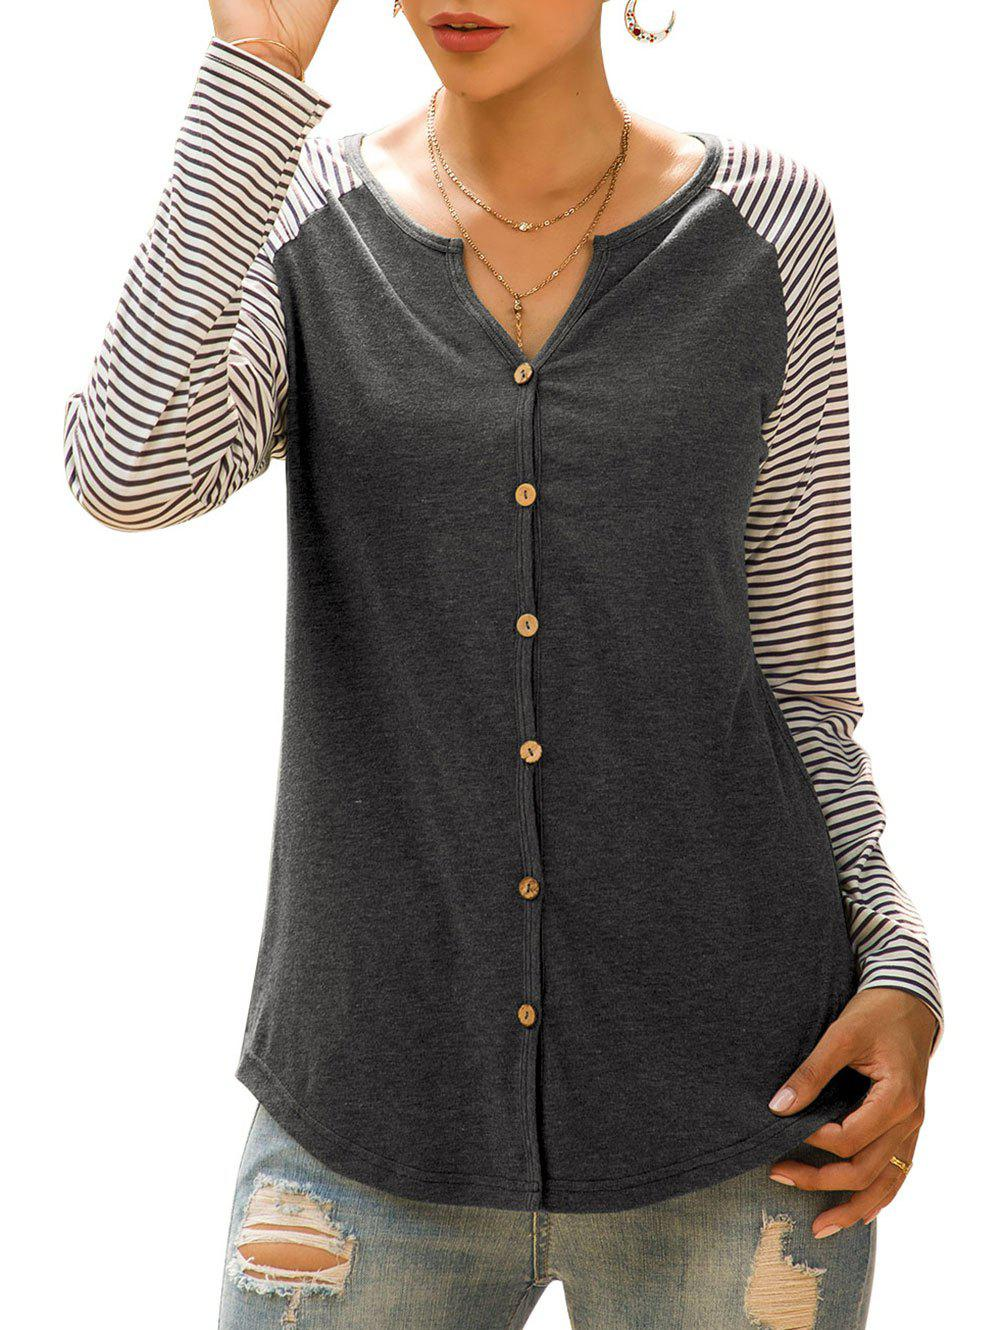 Affordable Raglan Sleeve Striped Button Up Top